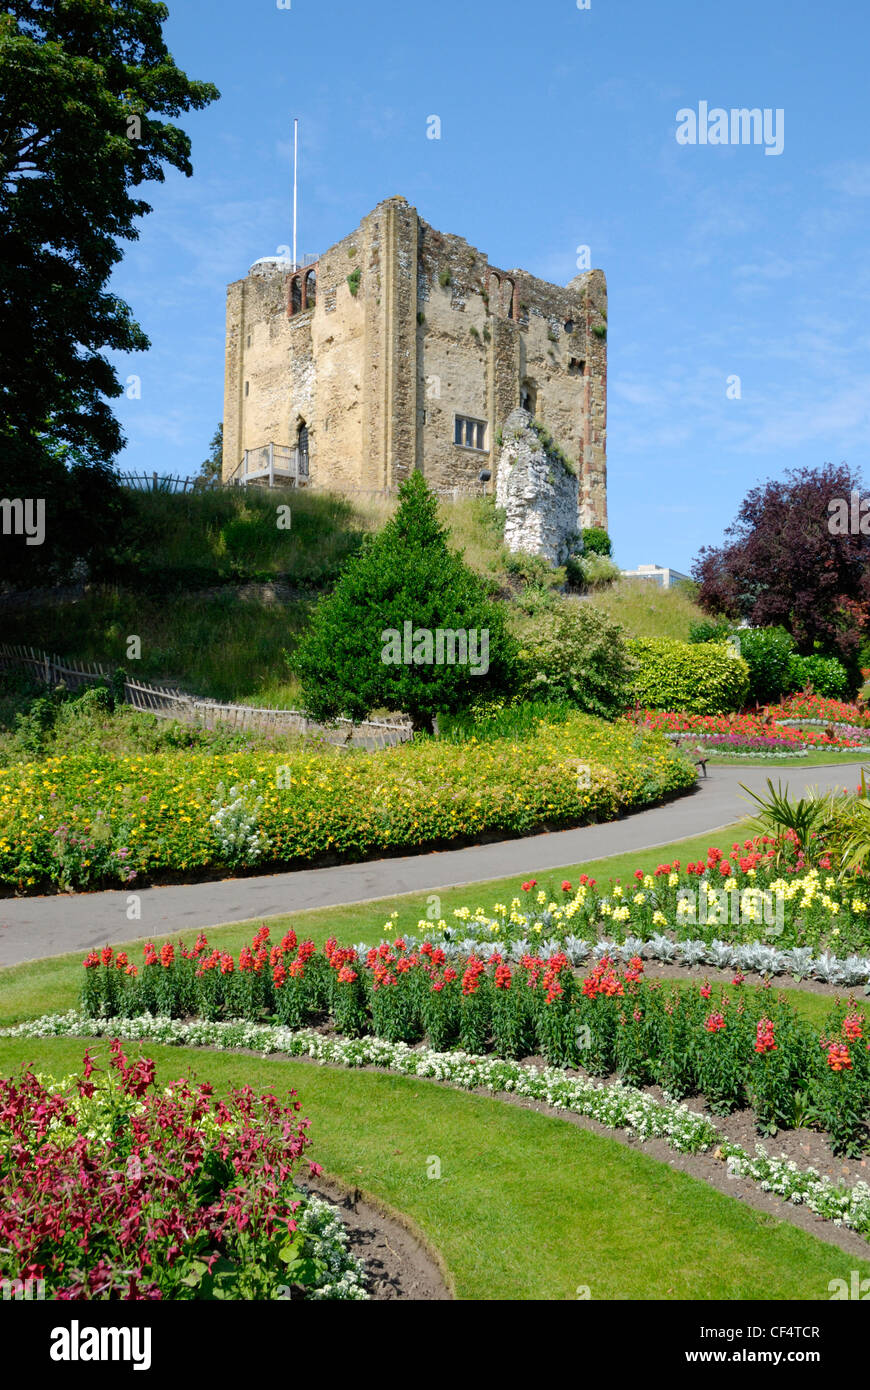 Guildford Castle tower keep and gardens. The castle started out as a Norman motte and bailey castle, built soon - Stock Image